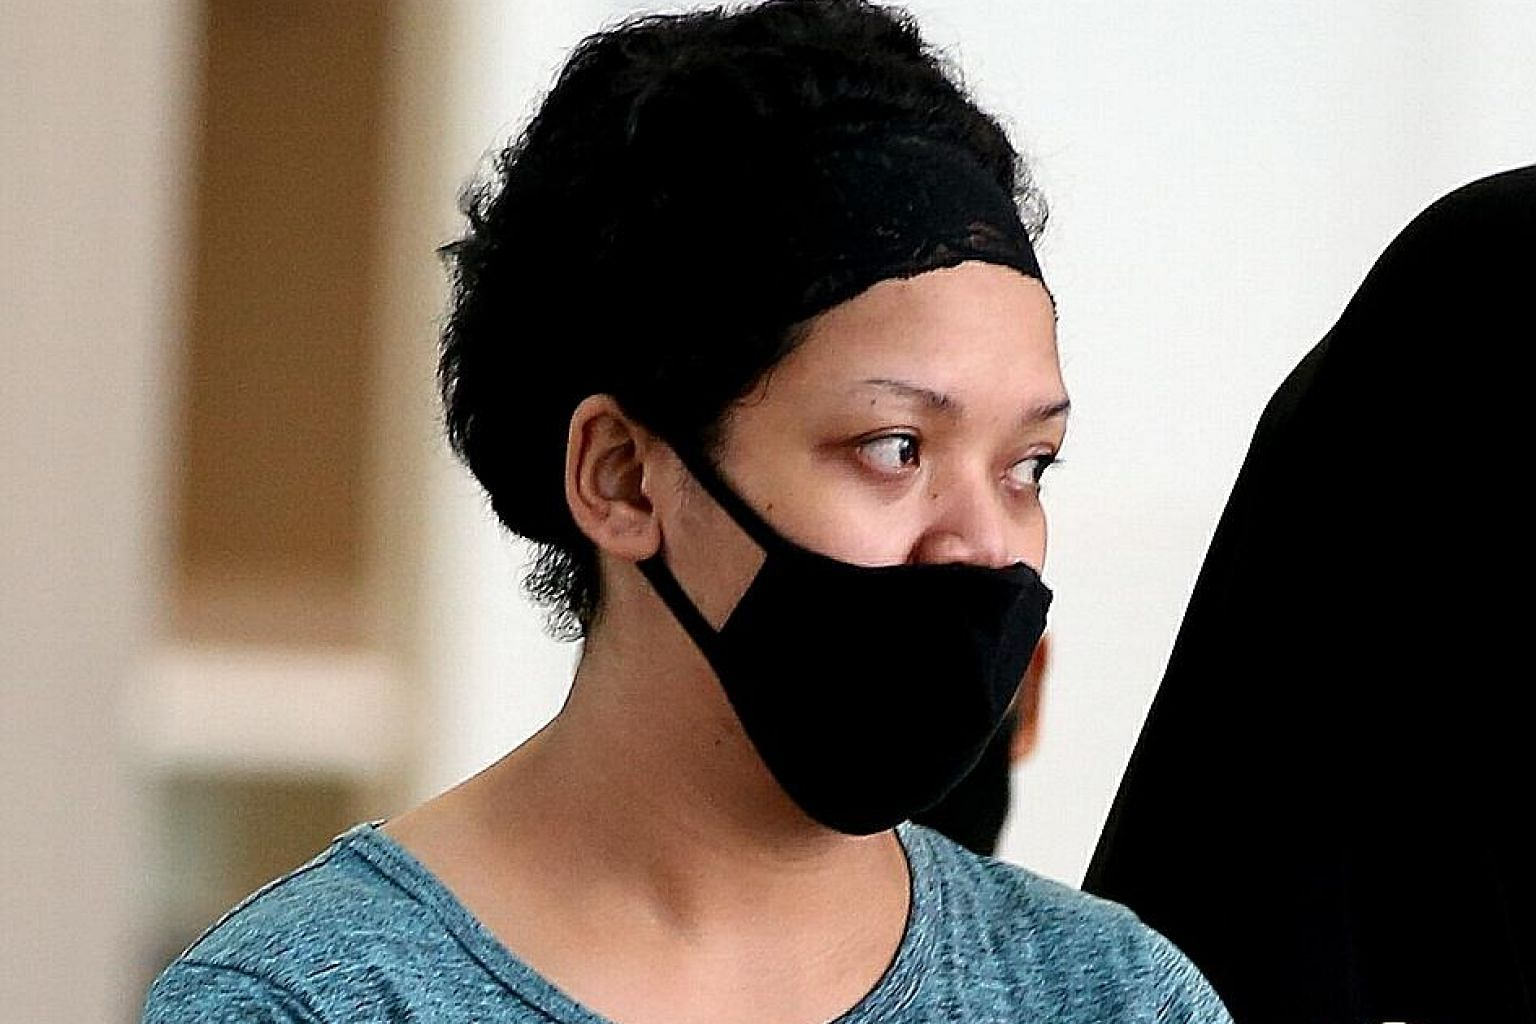 Noor Fadhilah Azlan, 28, had on Sept 24 last year offered two 14-year-olds and one 13-year-old the drug known as Ice in a rented bedroom she was living in. She has been sentenced to jail for seven years and nine months, and given a fine of $10,300. S